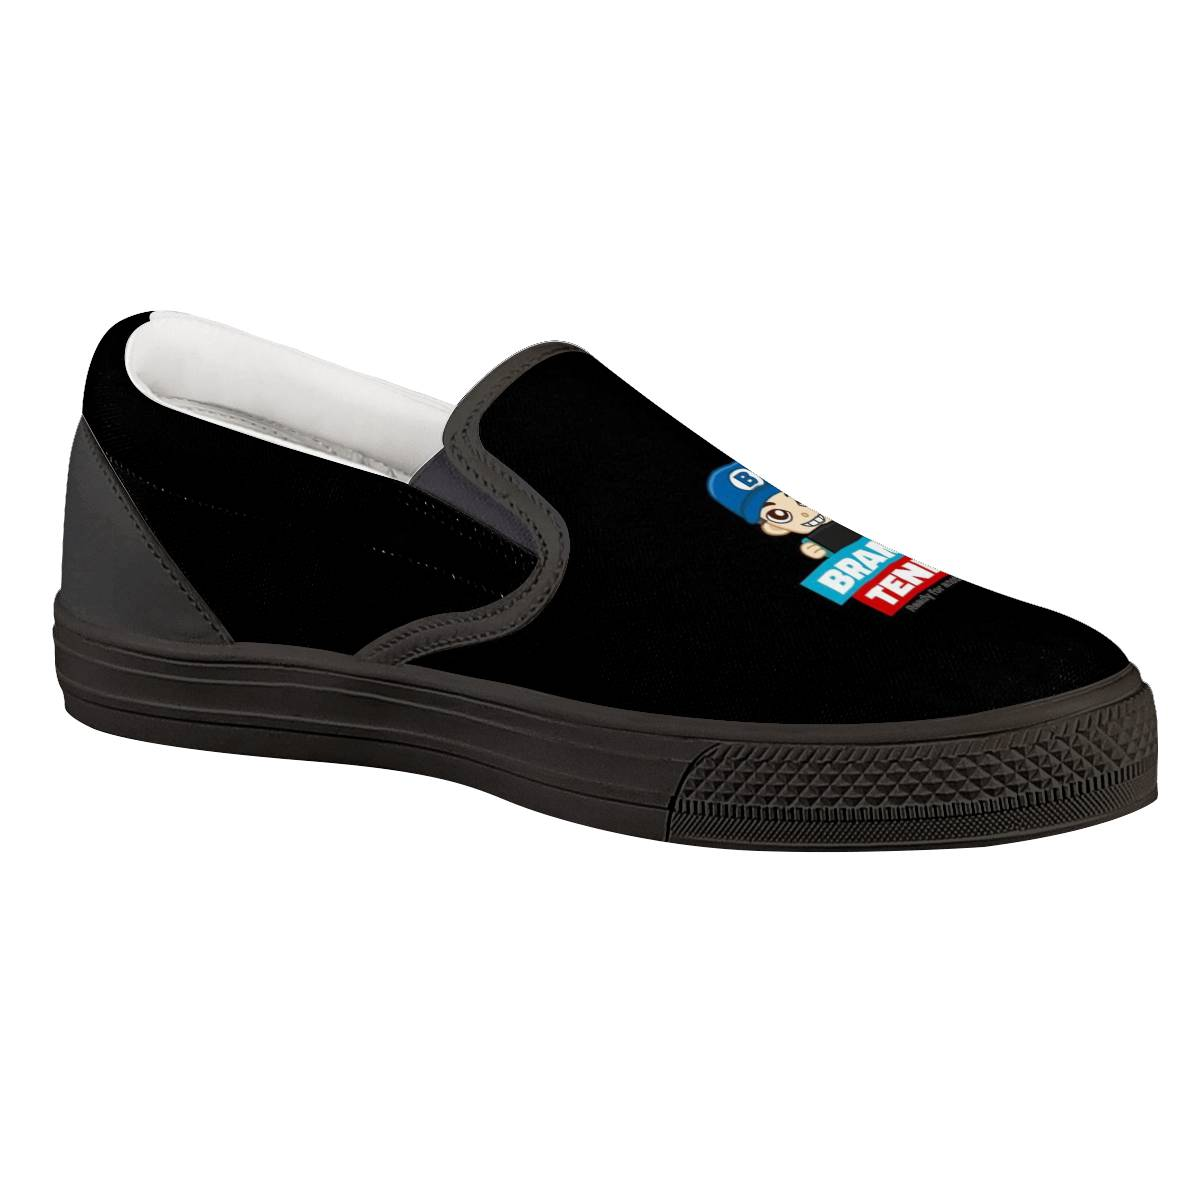 Bramtendo Official Slip On Shoes